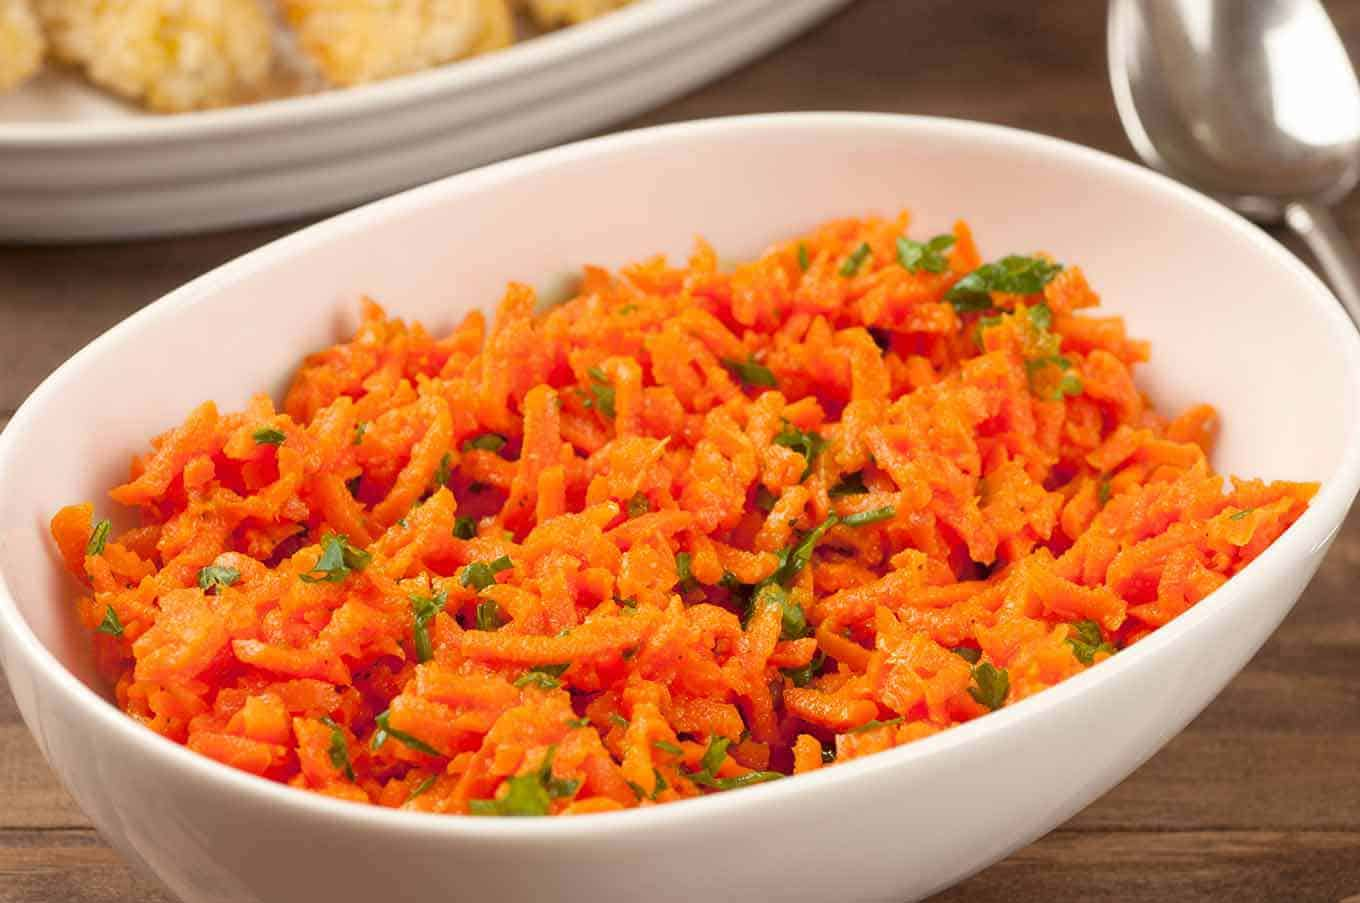 A serving bowl of carrot salad garnished with parsley.